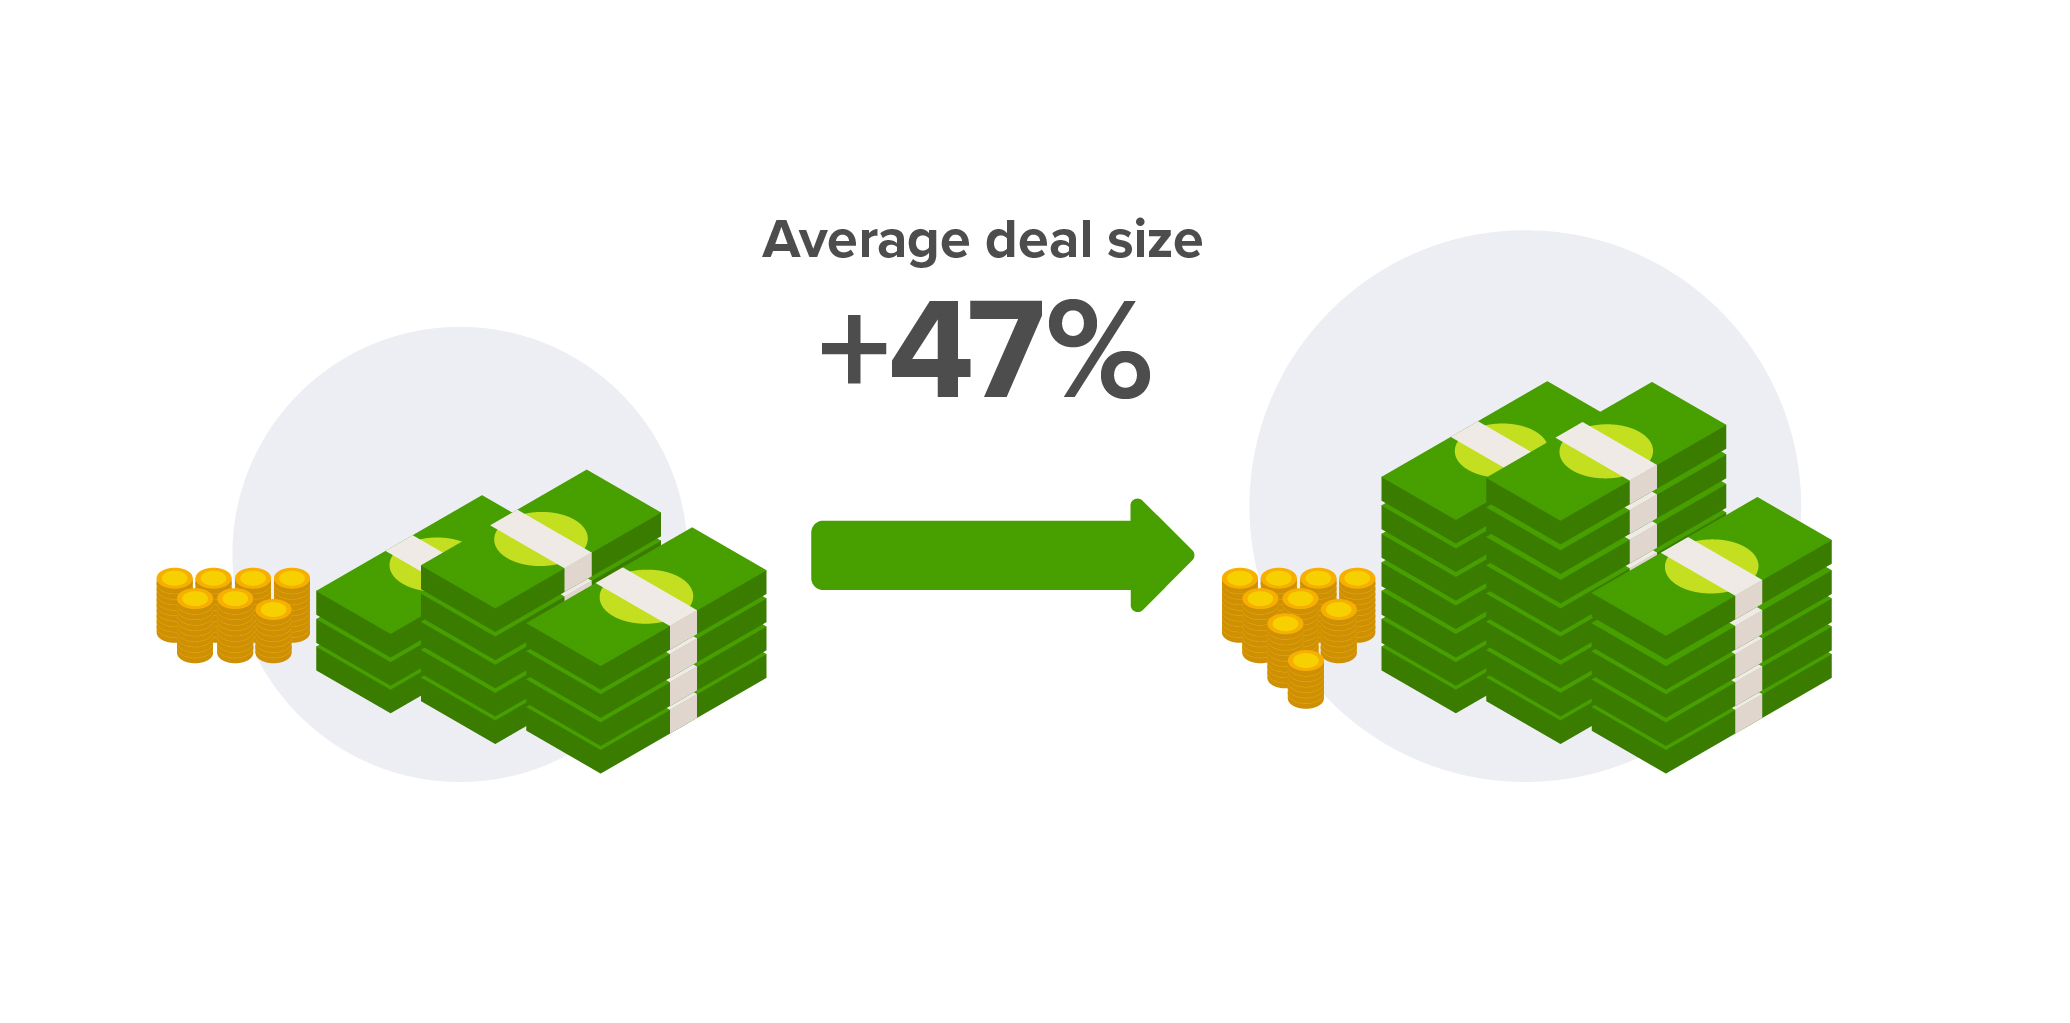 Increase in average deal size